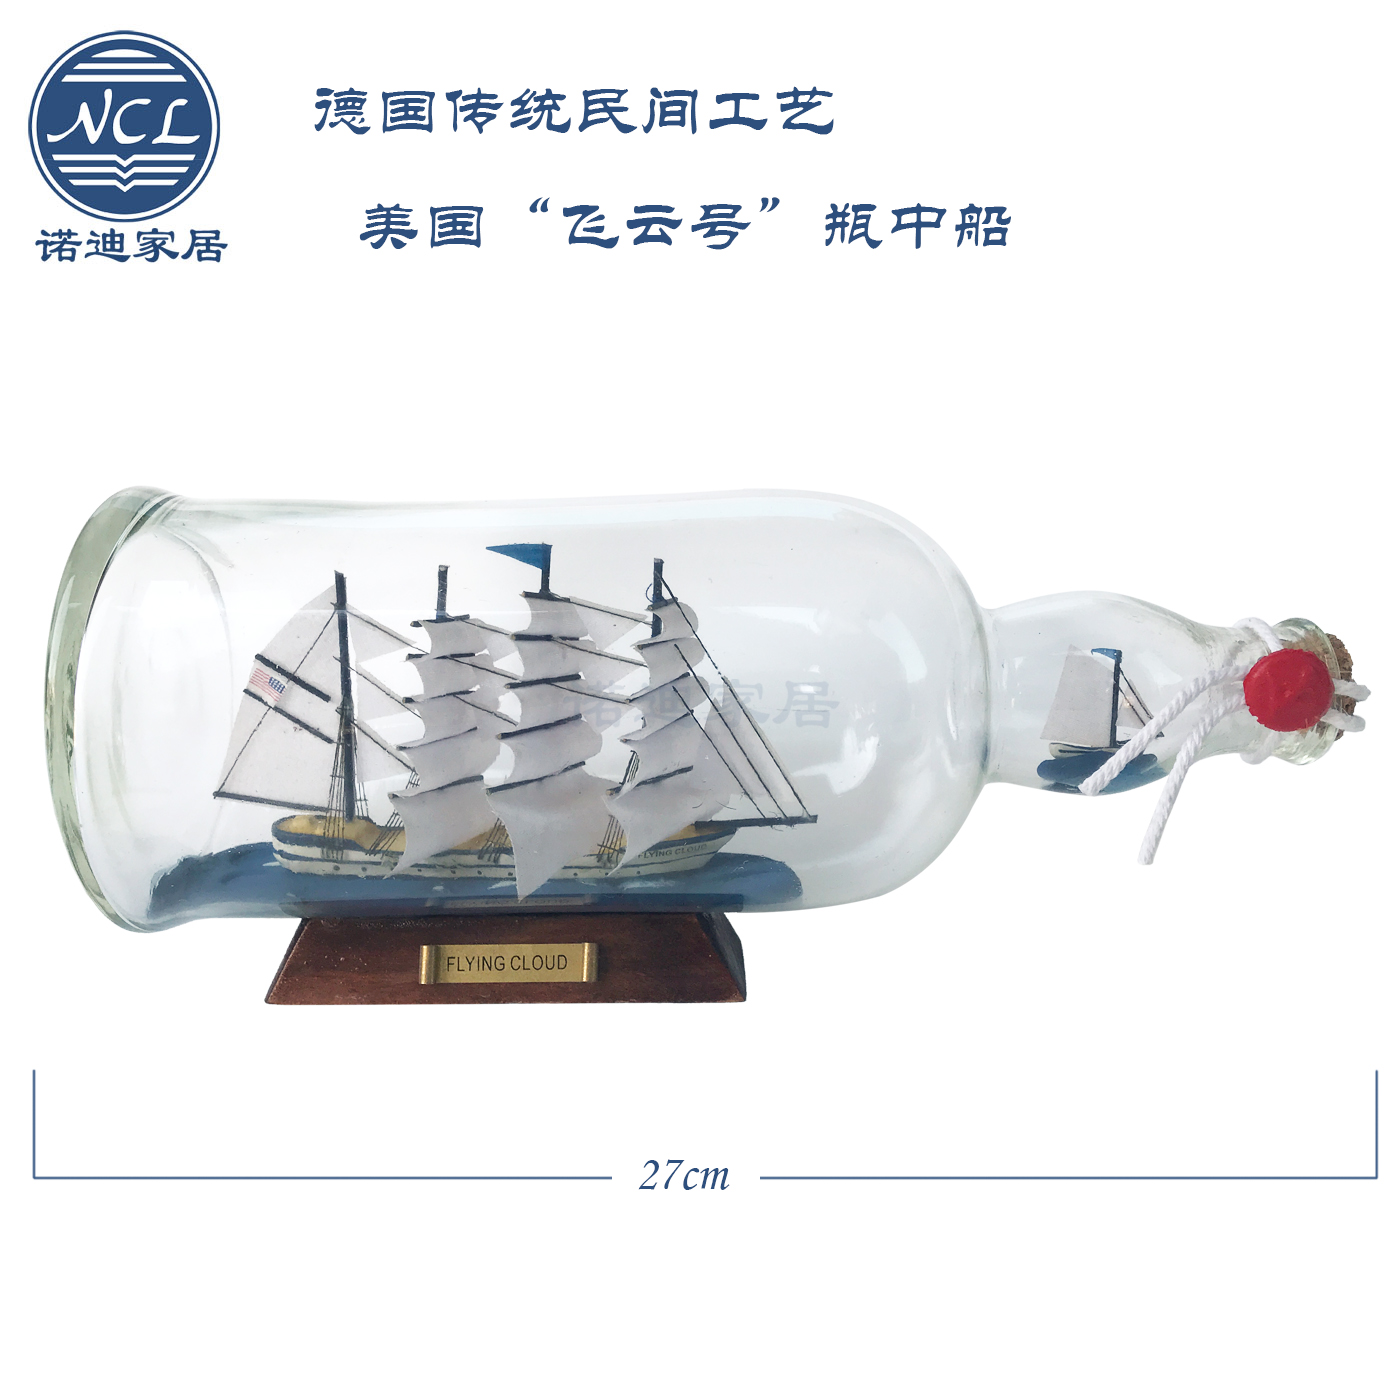 Drift Bottle Ship In A Bottle HMS Surprise Sailing on Mediterranean Home Sitting Room Adornment Place Adorn Gift Crafts Model camp hms lock